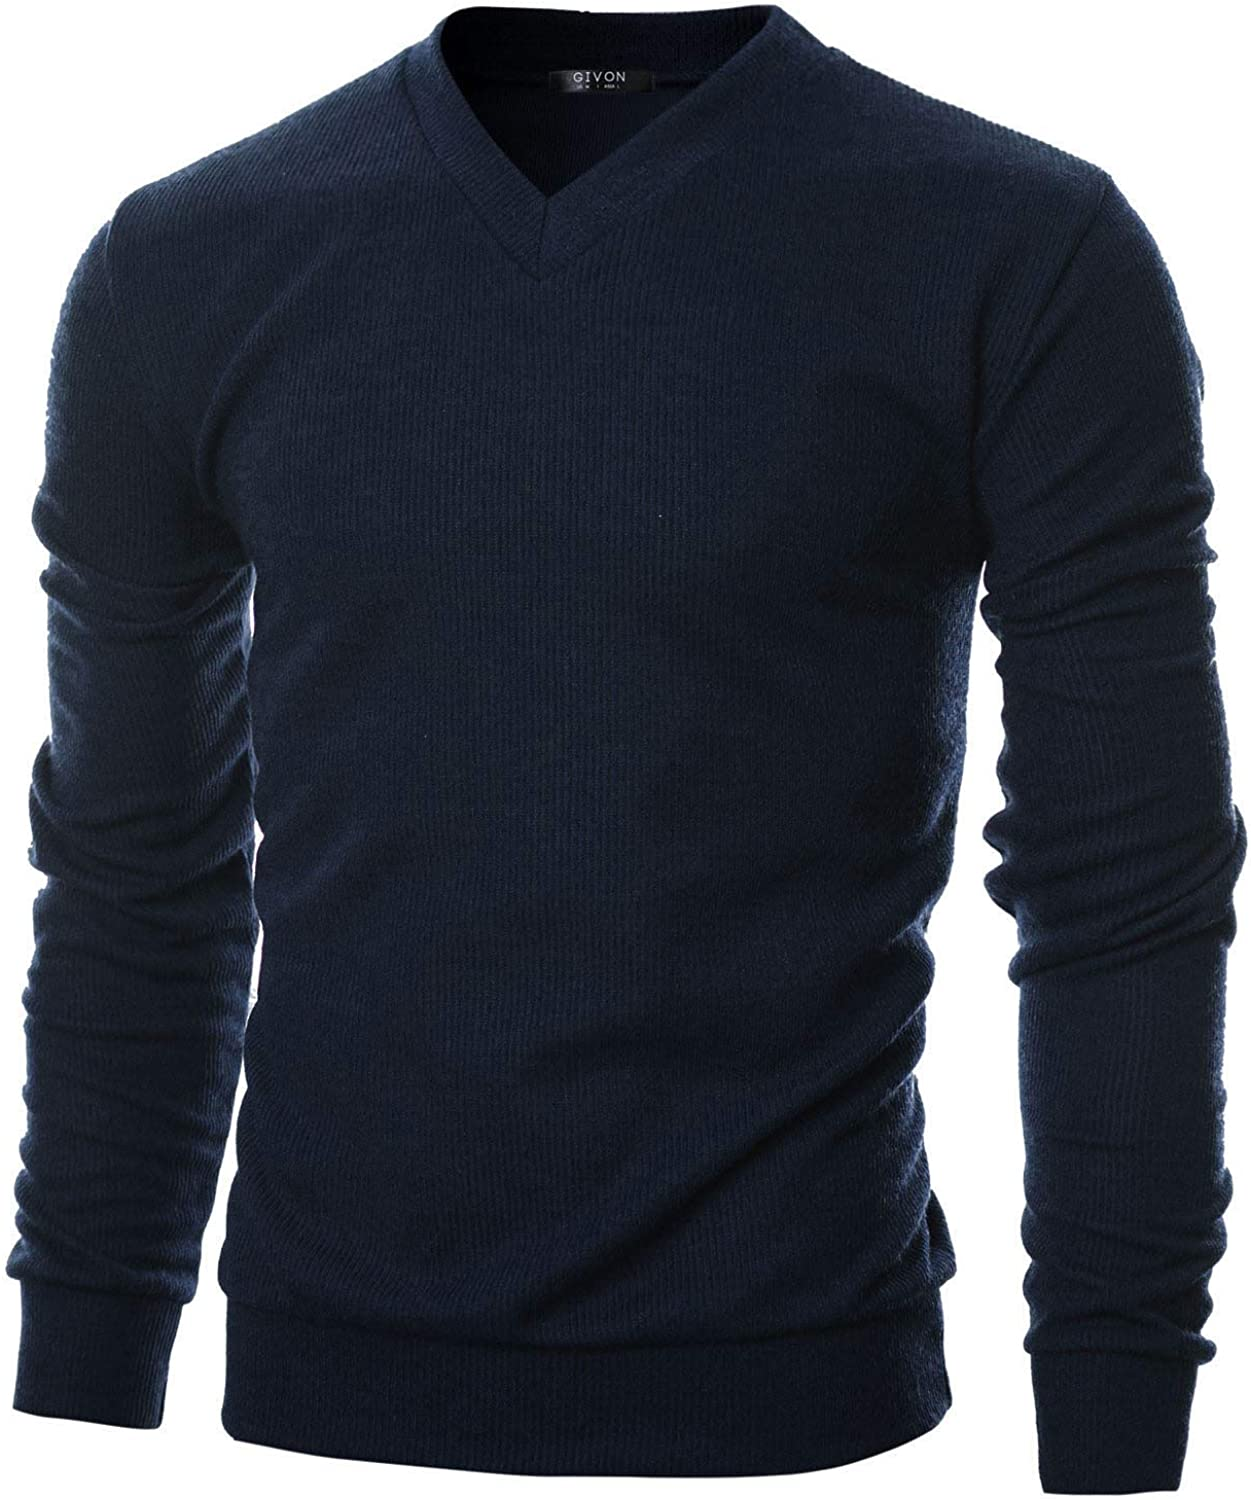 GIVON Mens Ranking integrated 1st place Slim Fit Soft Cotton Pullover V-Neck Sweater Clearance SALE Limited time Blend